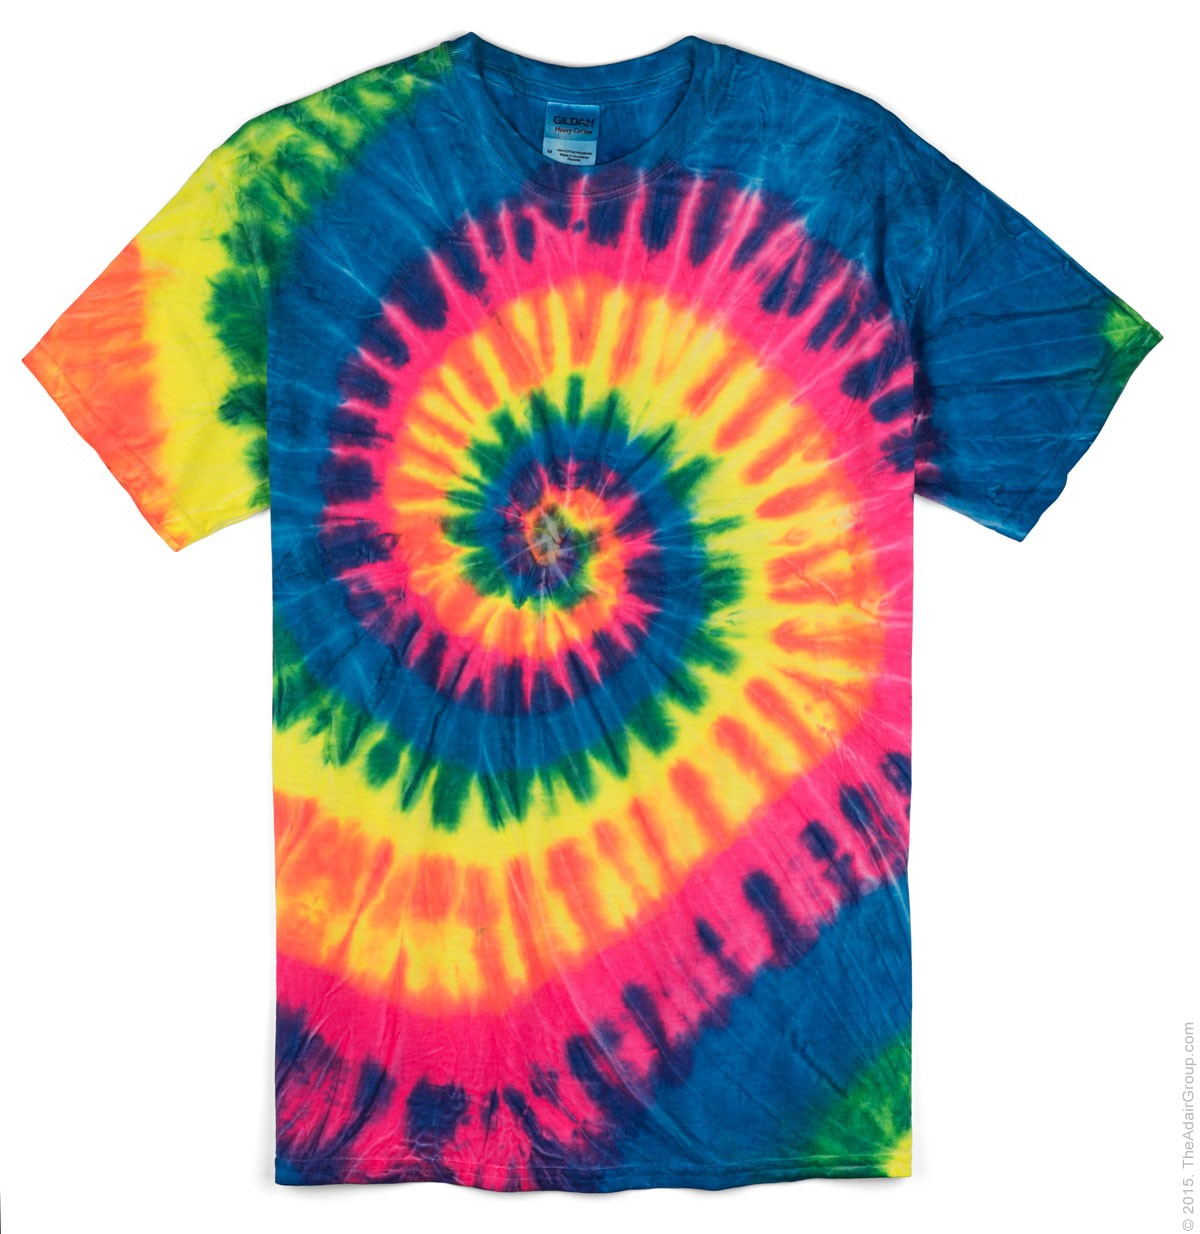 tie dye i 32 products  s&s worldwide offers arts & crafts, creative supplies, and fun activities that kids of  all ages will enjoy free shipping on tie dye orders over $59.